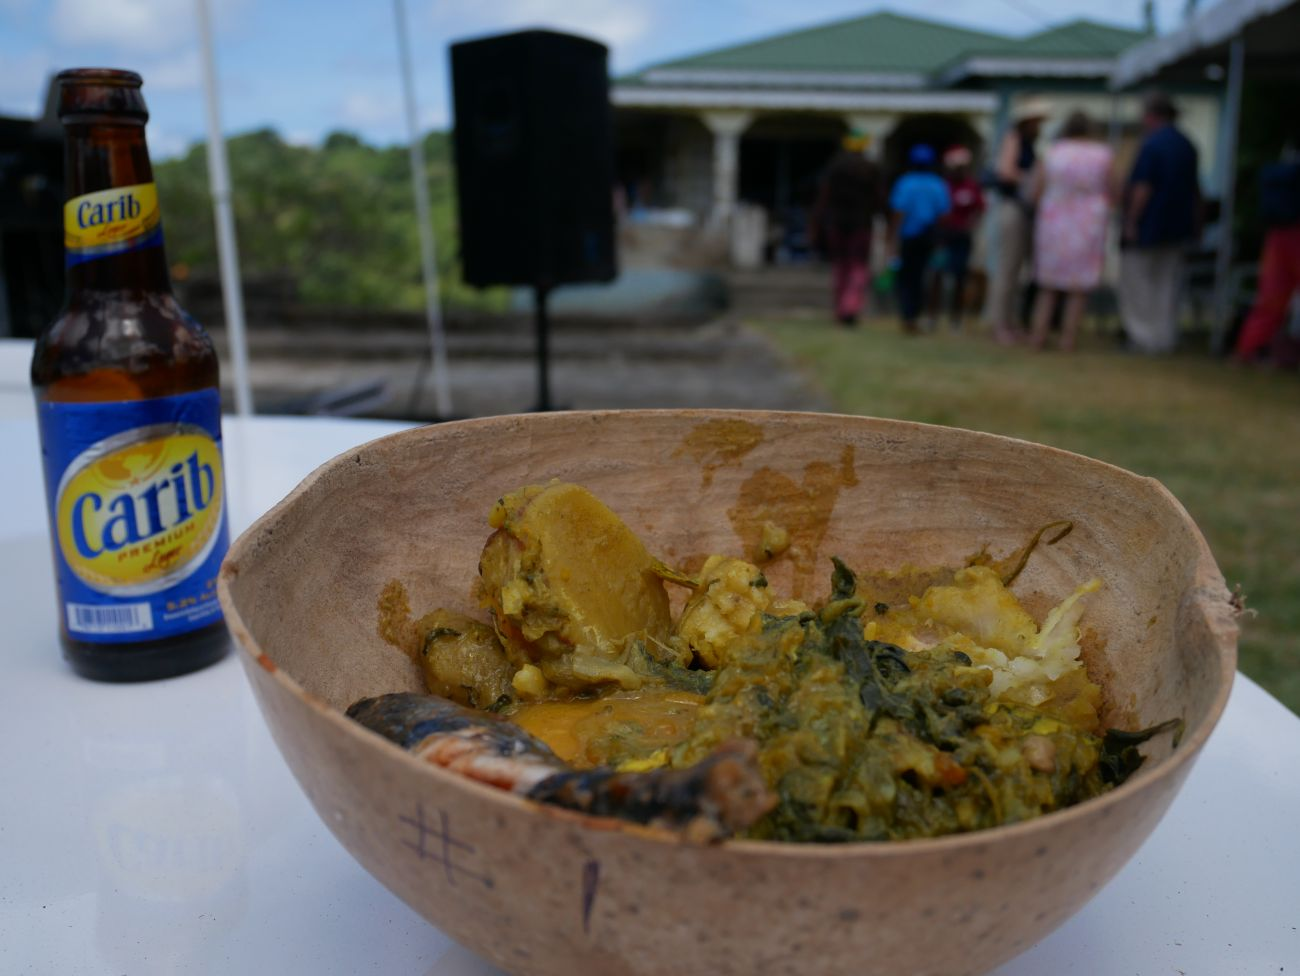 Traditional Grenadian oildown served in a Calabash with a bottle of Carib beer